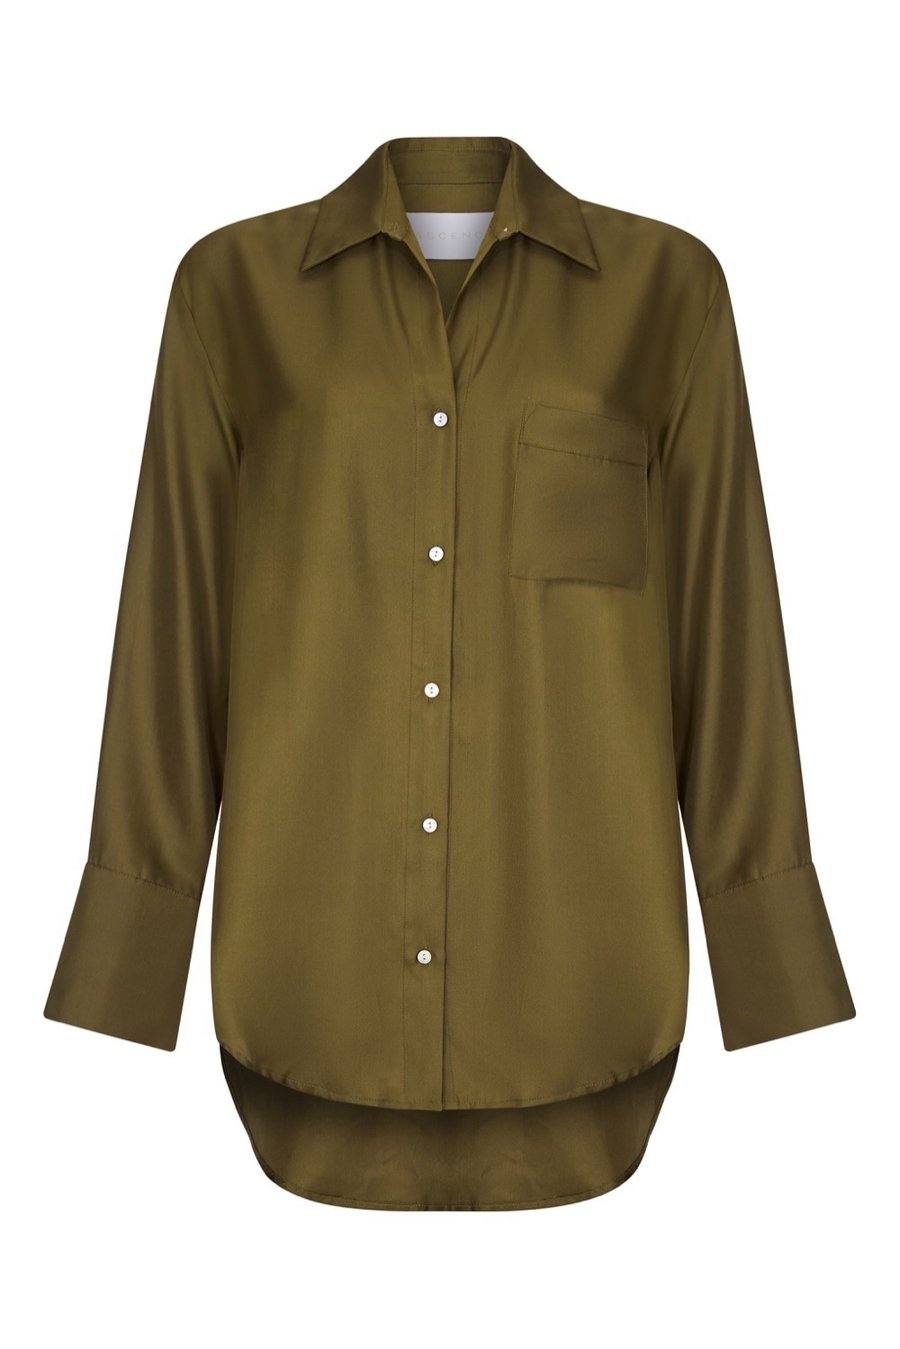 ASCENO MILAN OLIVE SILK TWILL OVERSIZED SHIRT